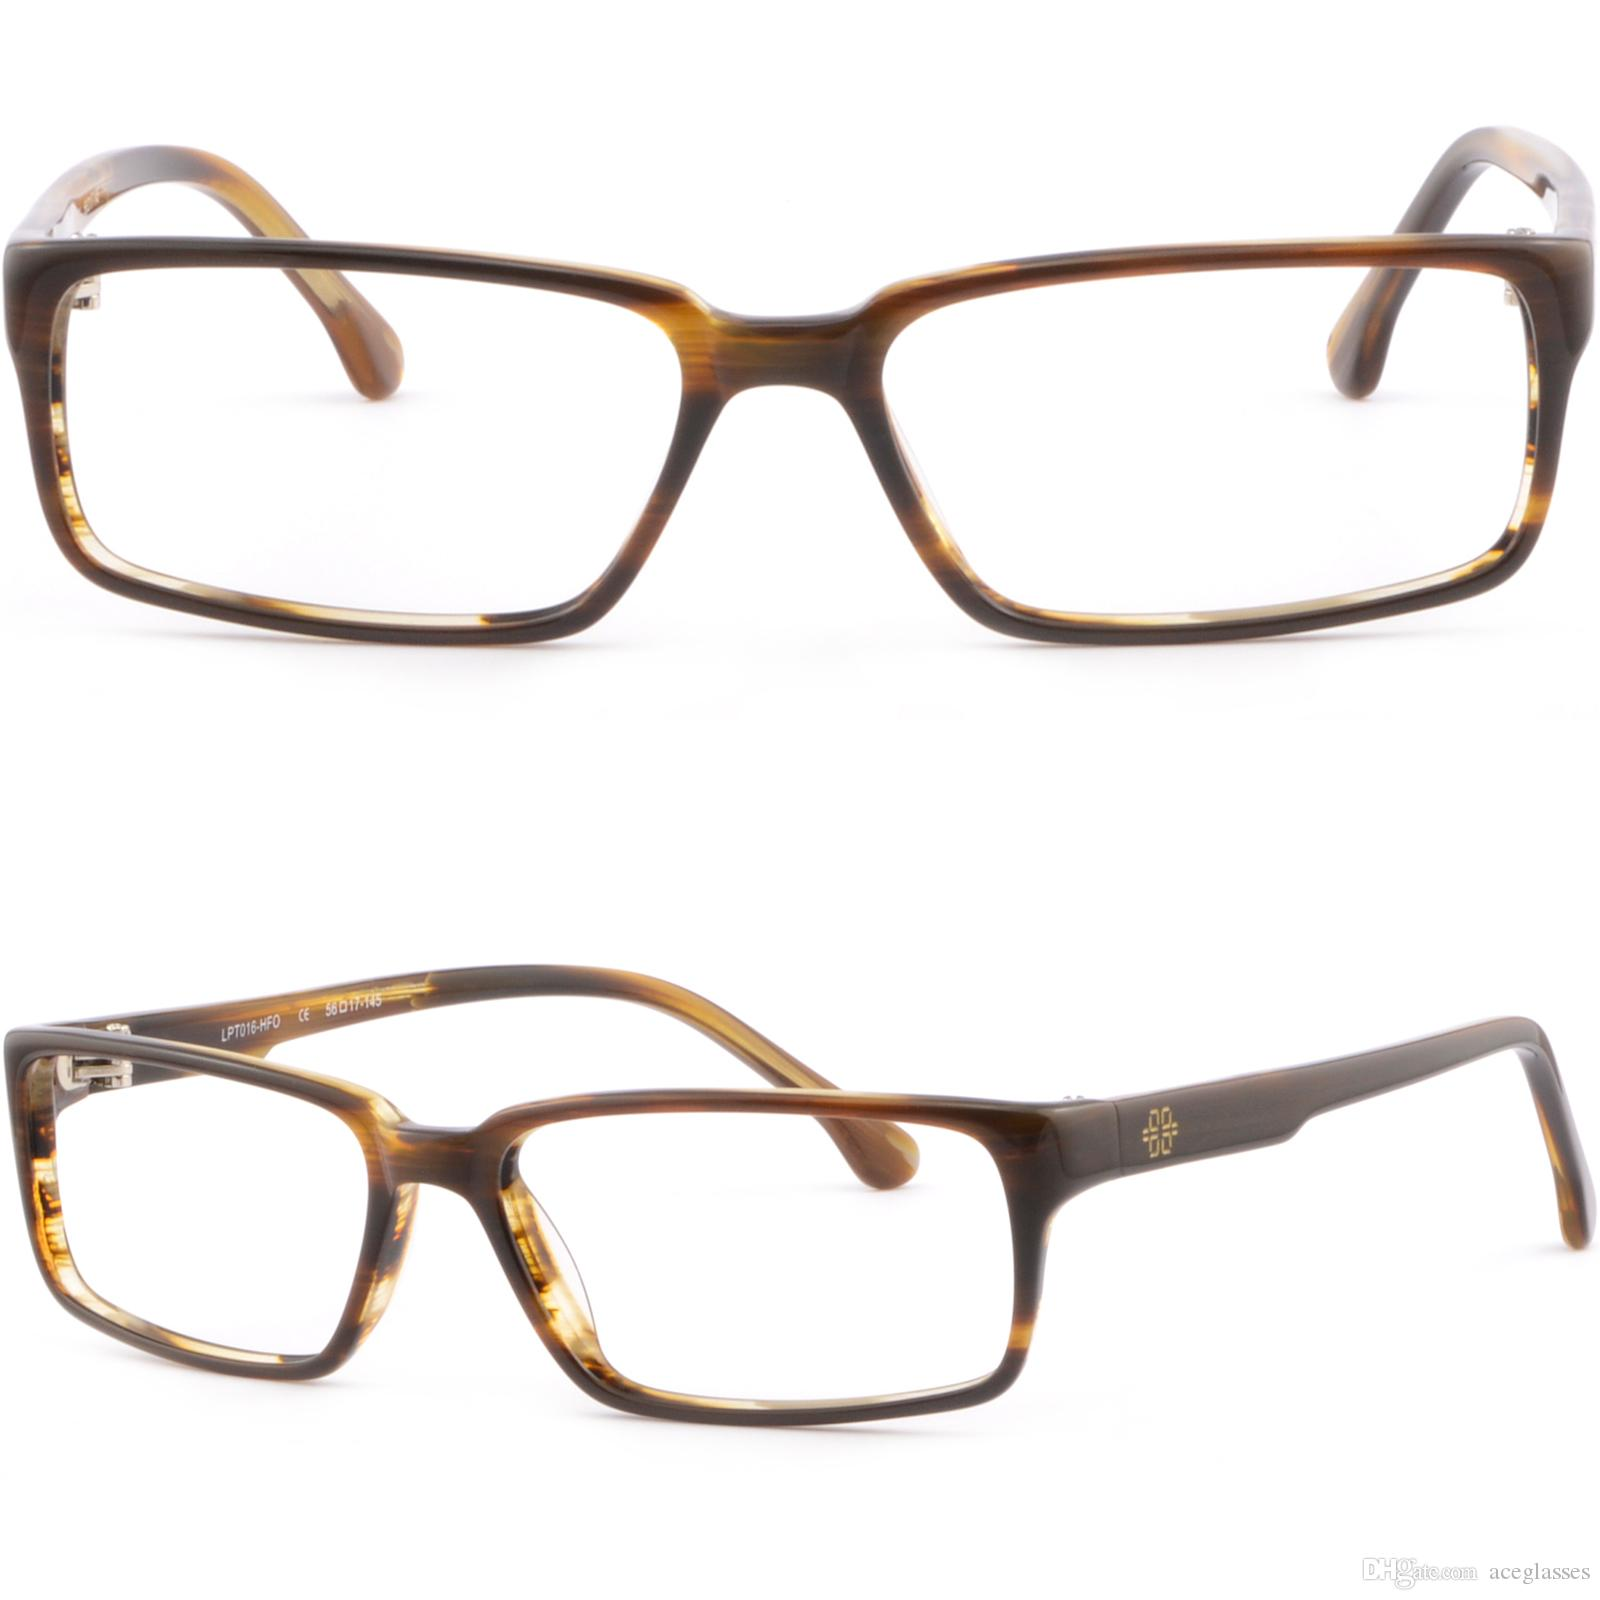 Brown Full Rim Rectangle Light Plastic Frames Prescription Glasses ...